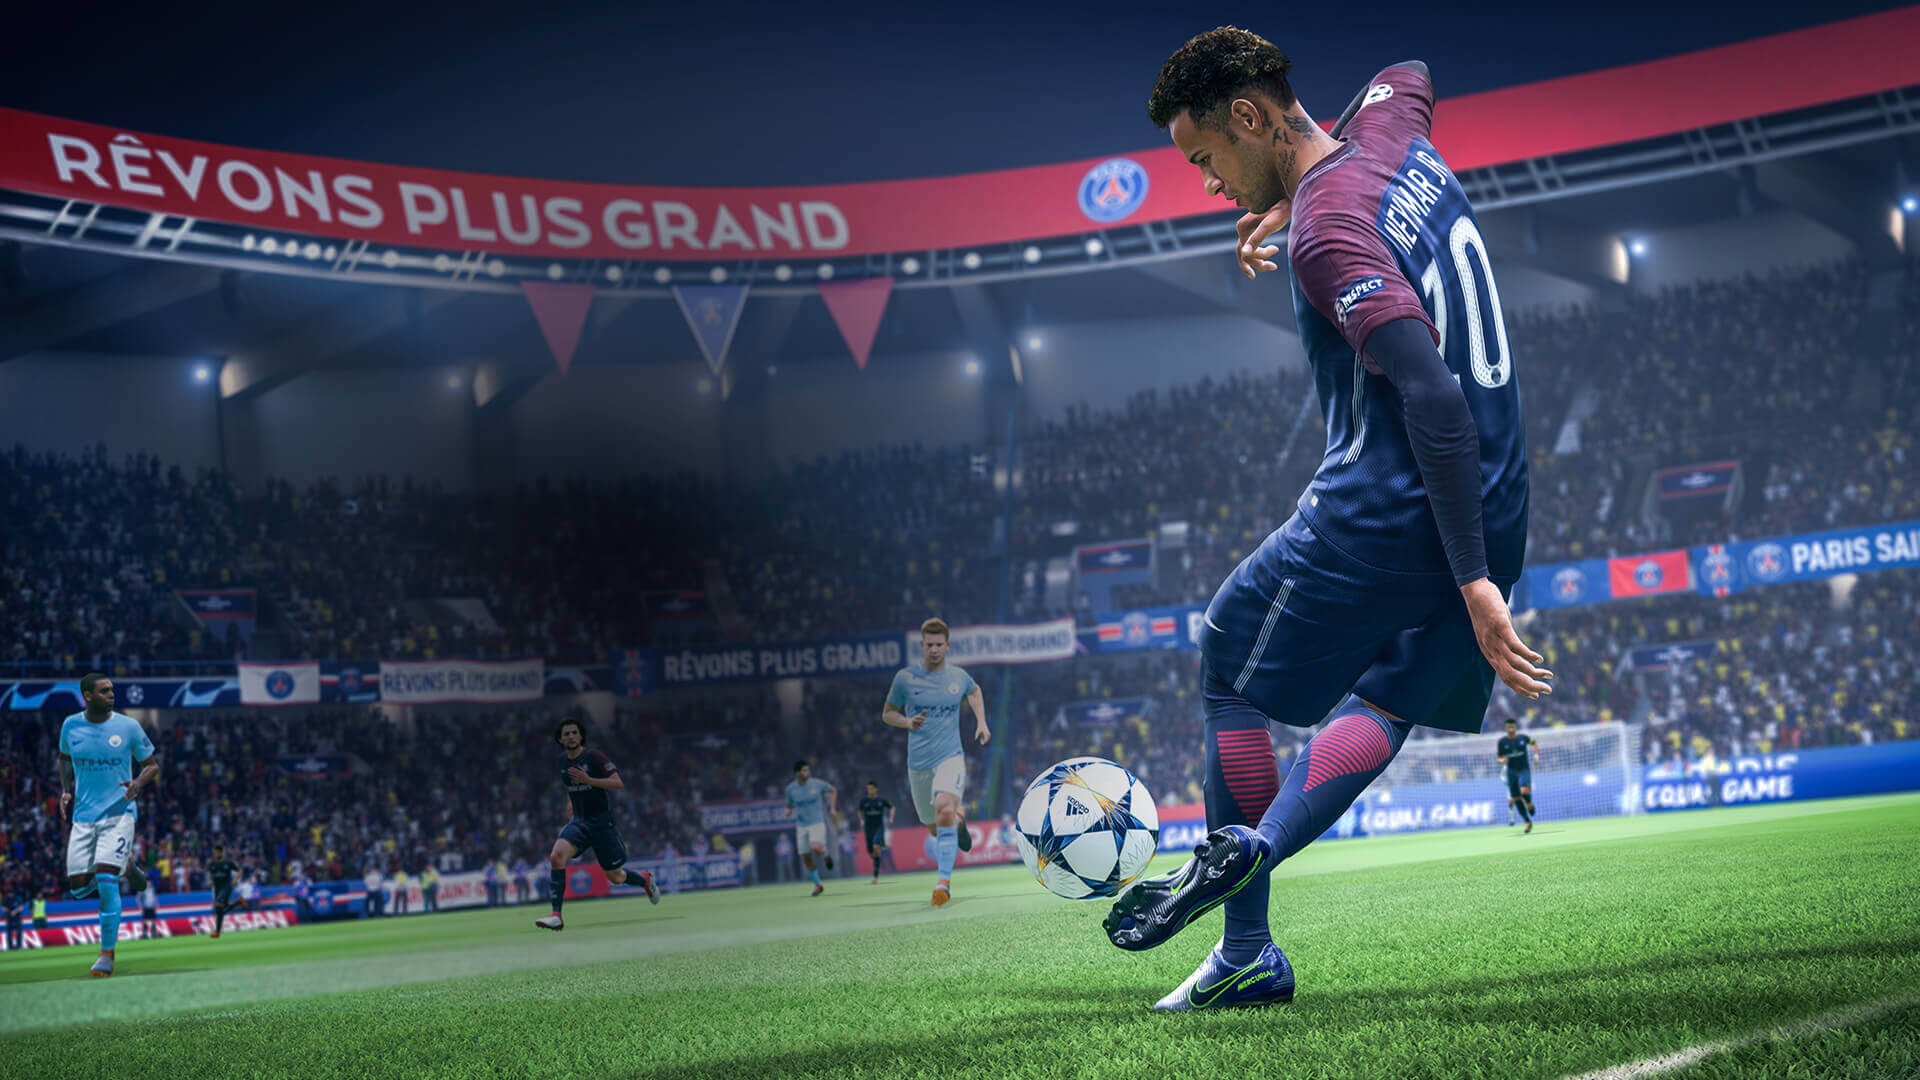 EA announces FIFA Stay and Play Cup virtual tournament in lieu of real soccer